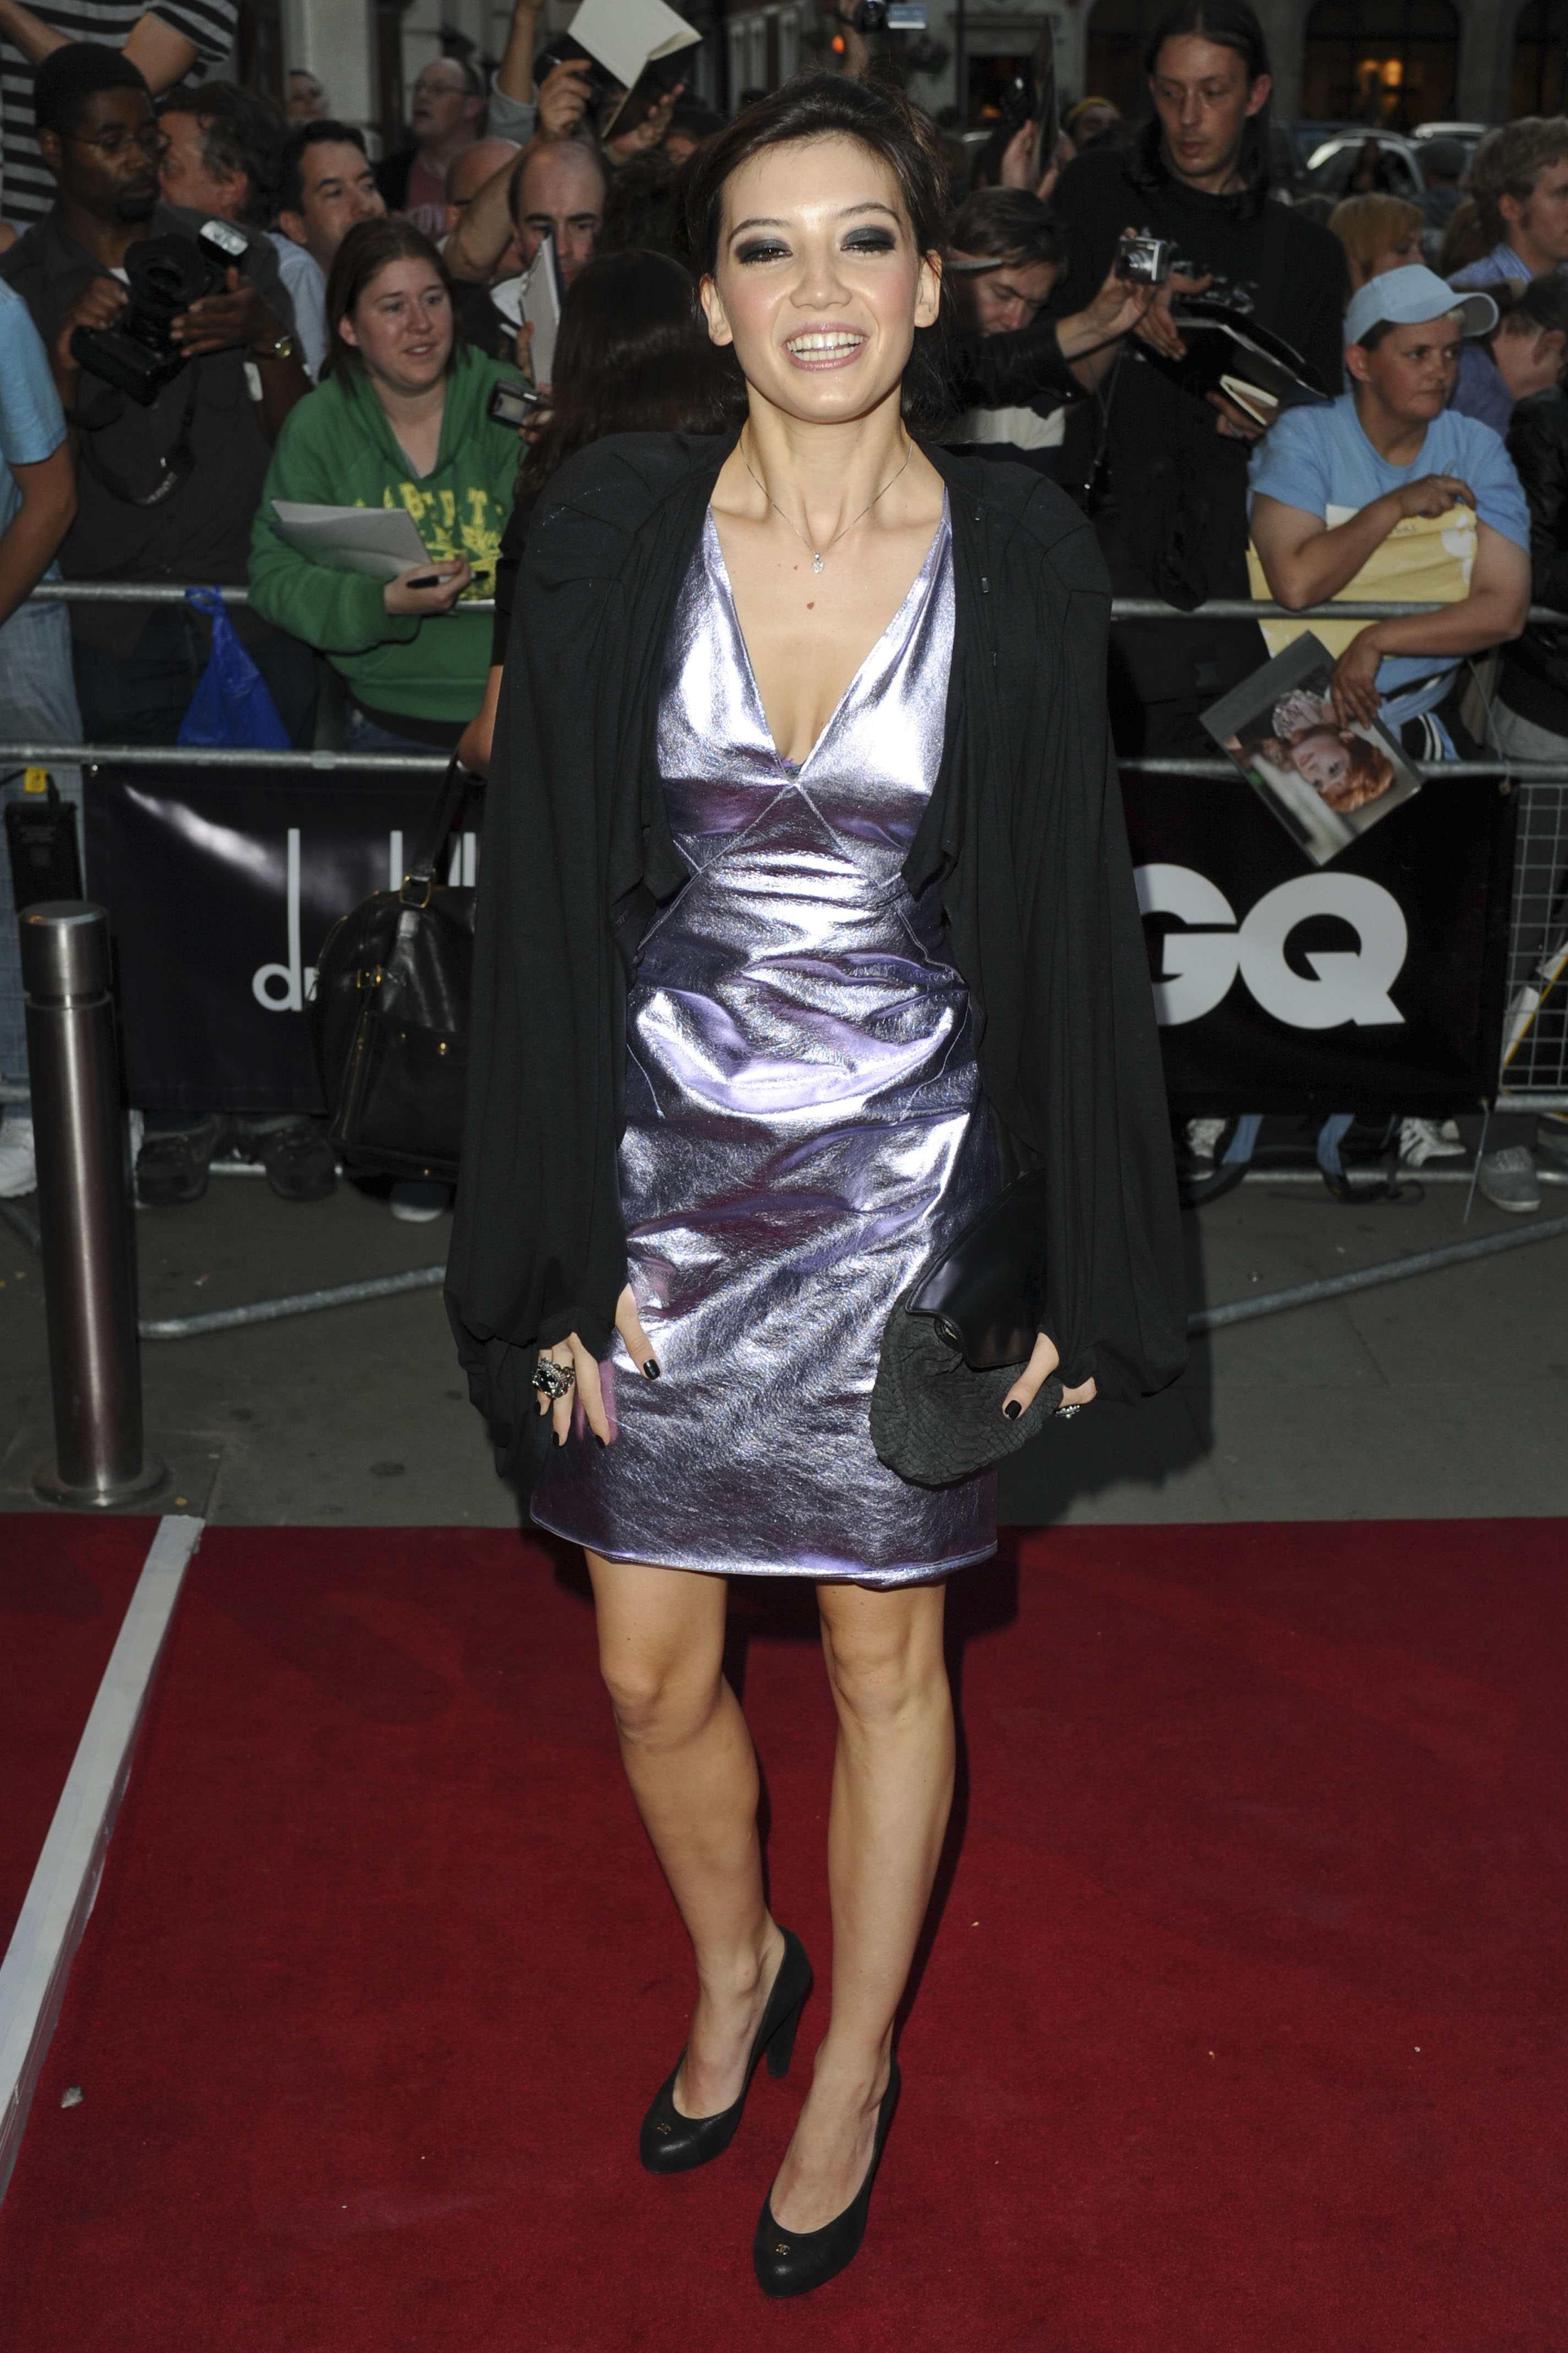 20151_Daisy_Lowe_-_GQ_Men_Of_The_Year_Awards_8th_Sept_2009_6111_122_189lo.jpg